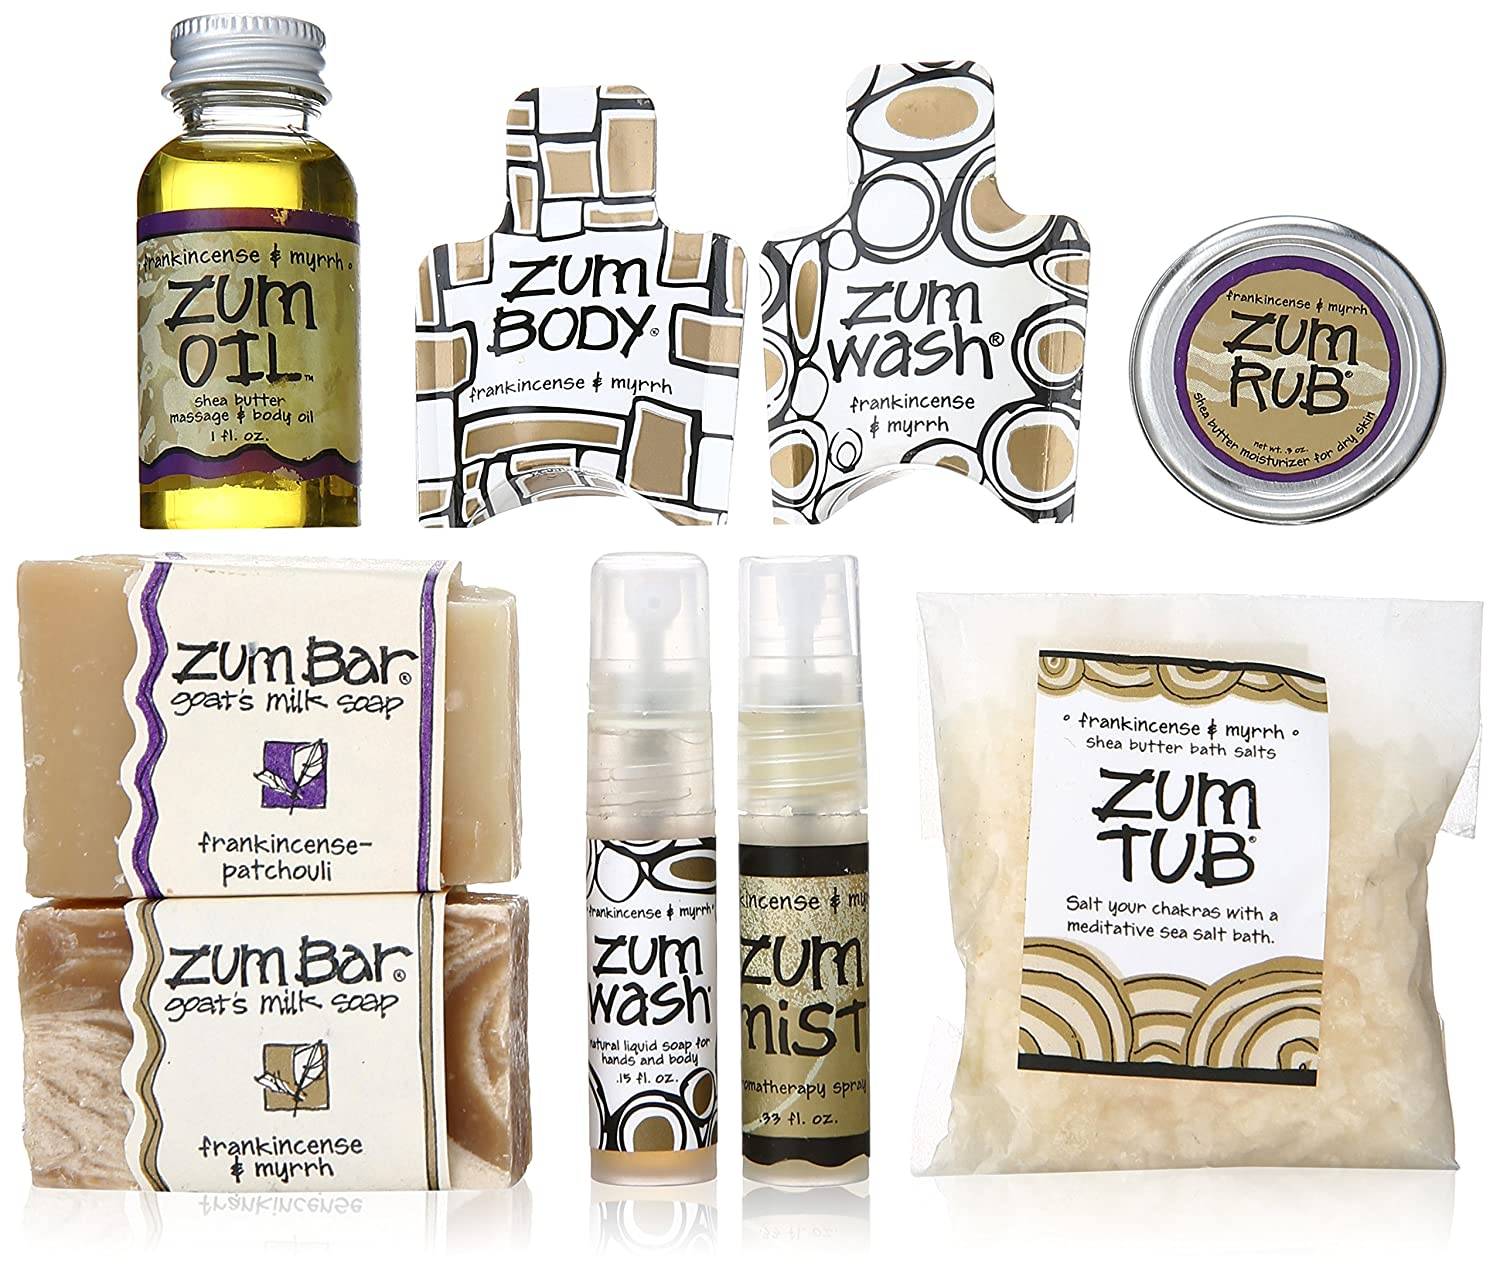 Indigo Wild Zum Bag, Frankincense and Myrrh